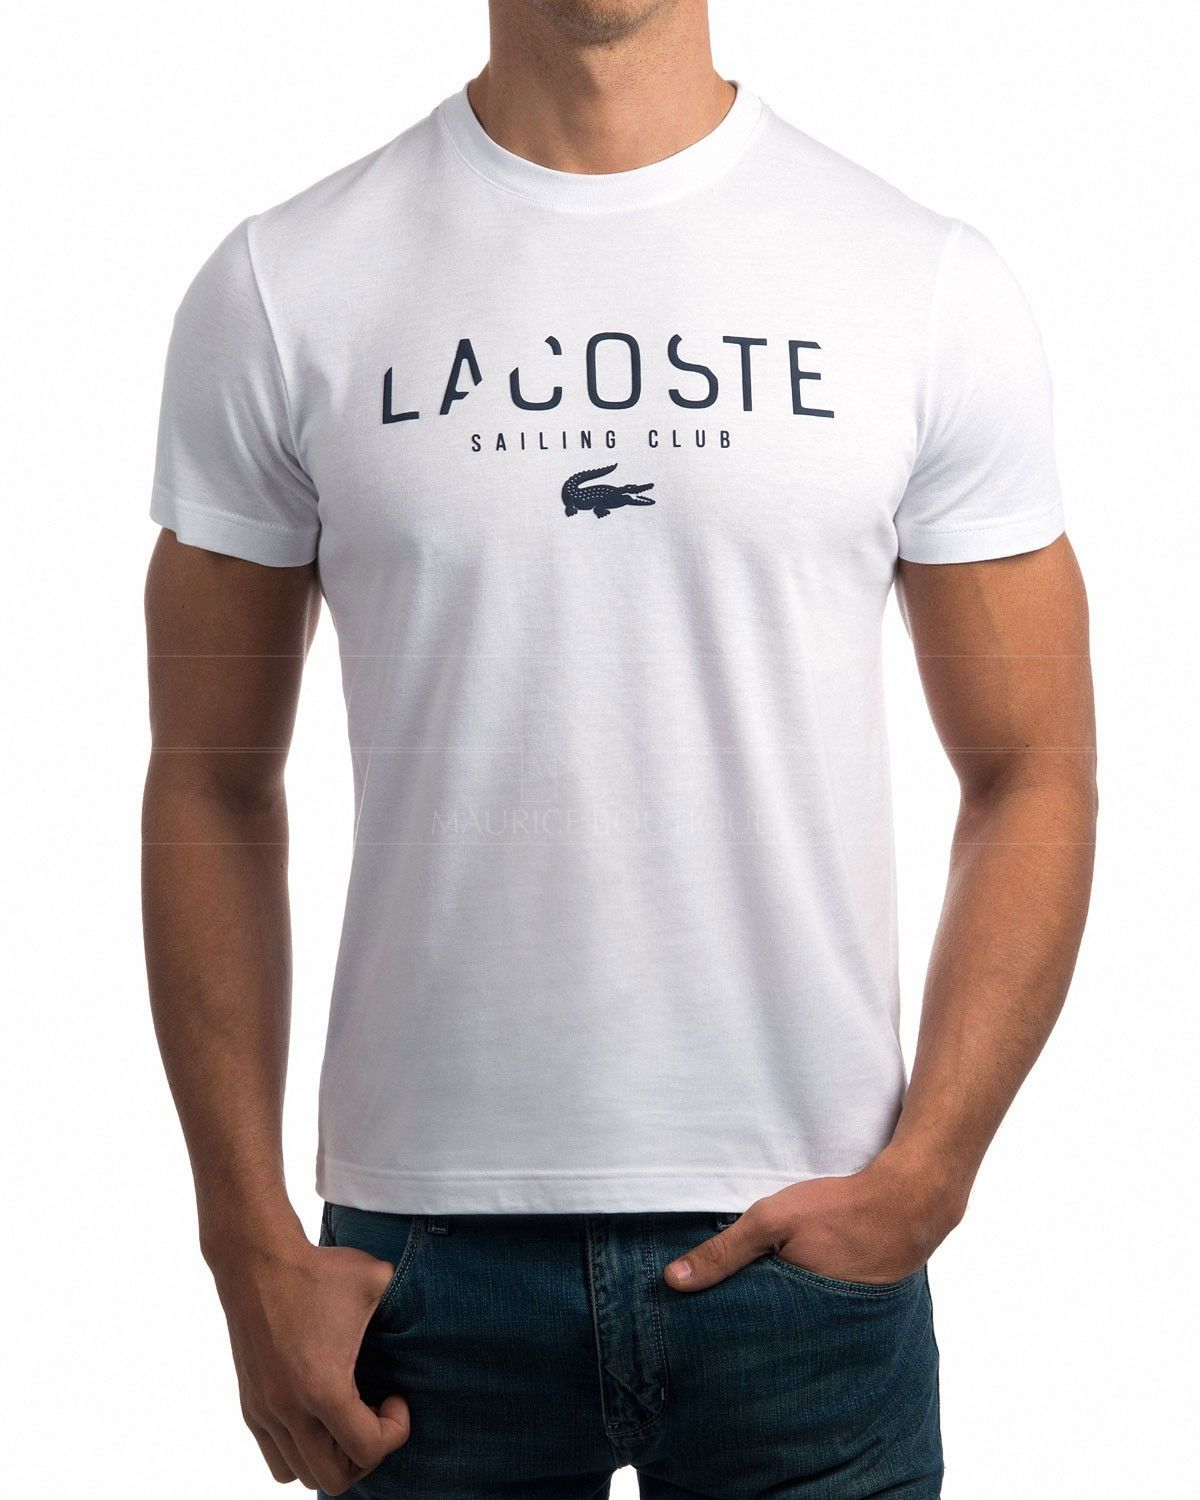 camiseta lacoste blanca club de vela envio gratis t. Black Bedroom Furniture Sets. Home Design Ideas